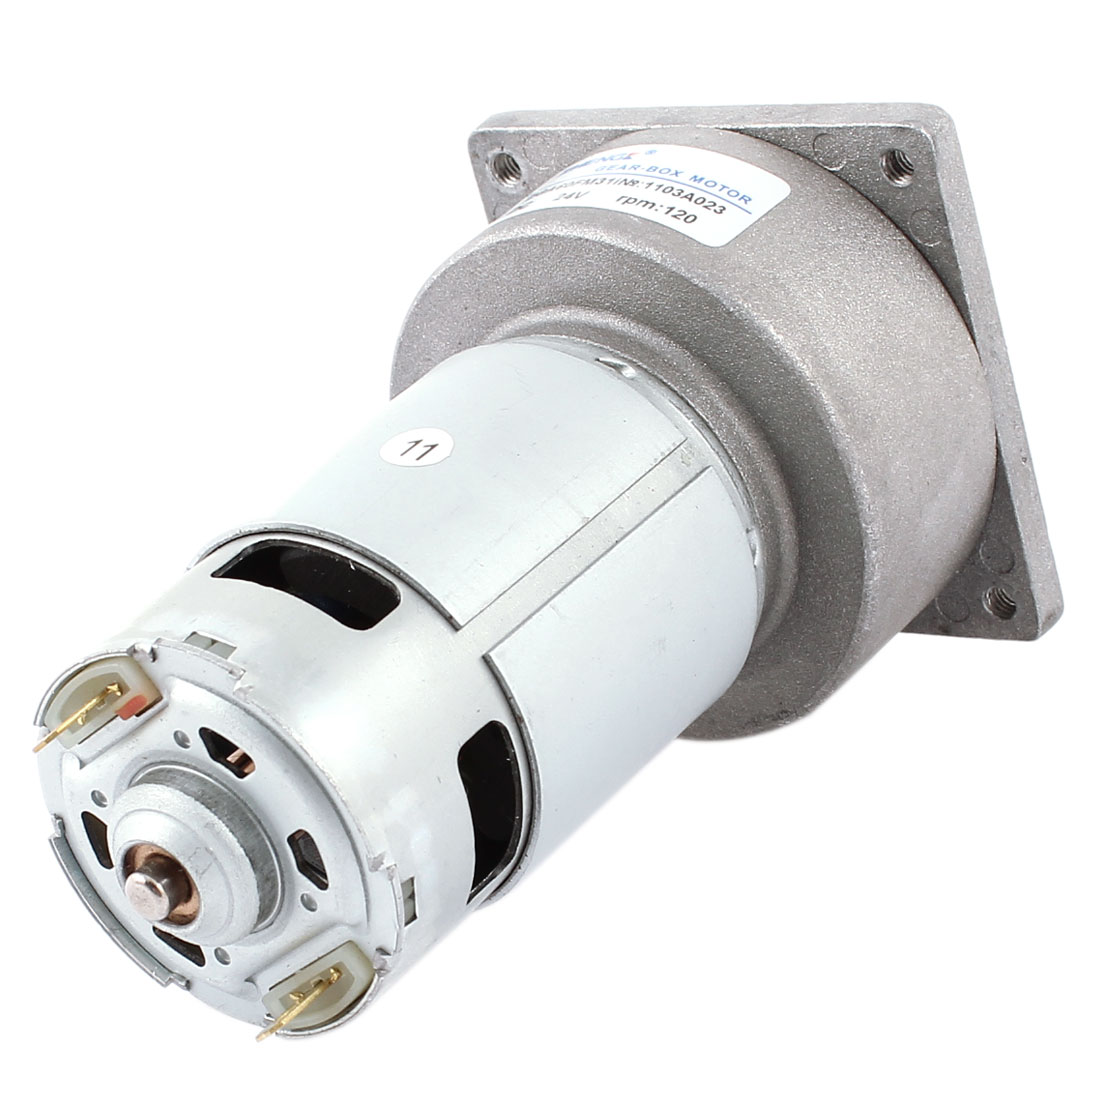 DC 24V 4600RPM Powerful Flange Mounted Magnetic Electric Geared Motor